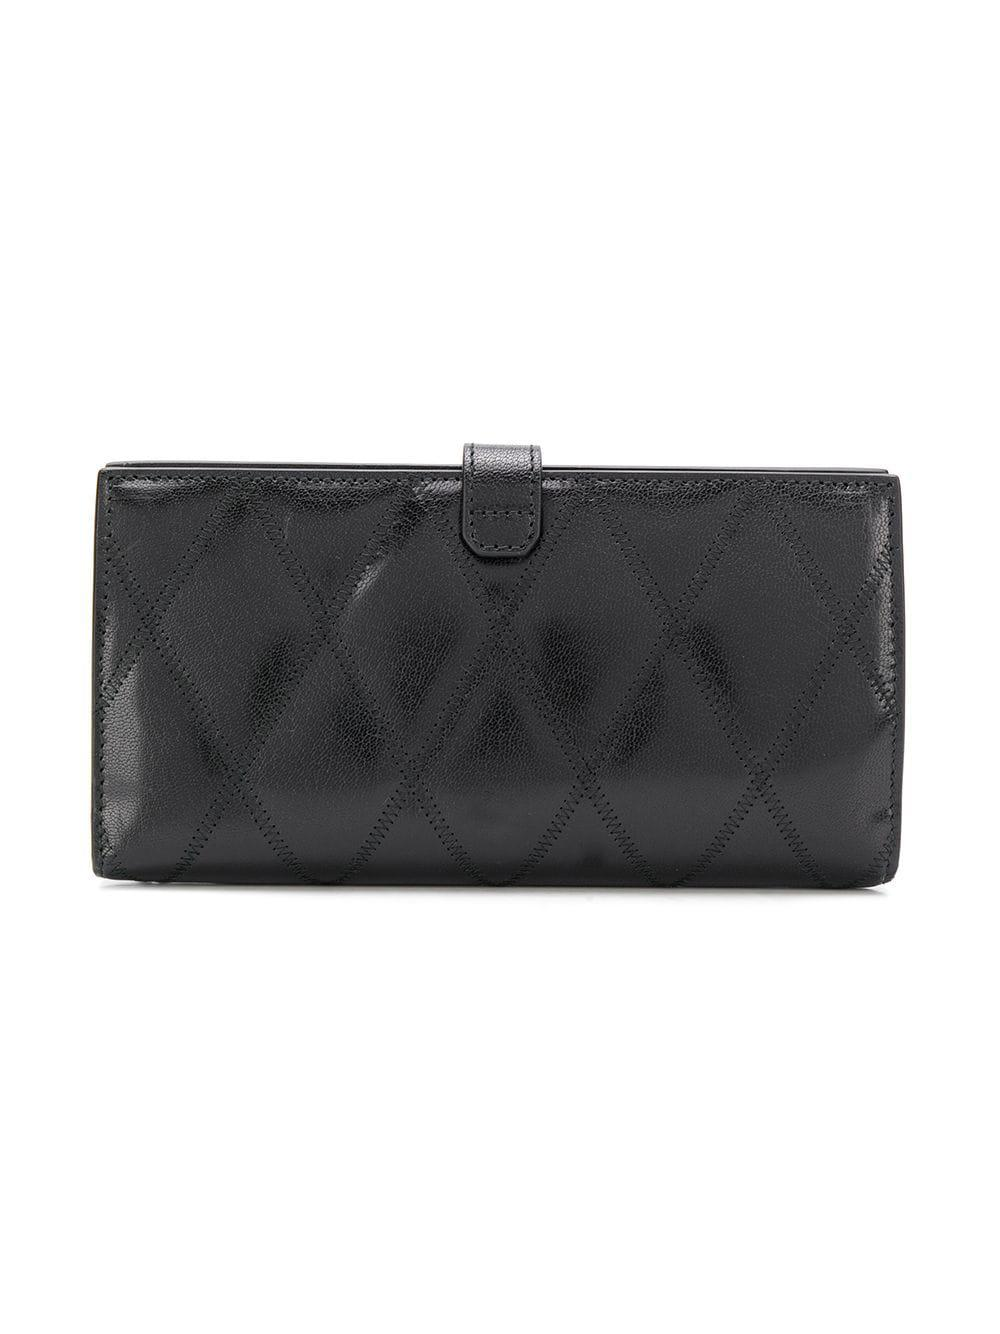 38518e2a4a24 Lyst - Givenchy Gv3 Long Wallet in Black